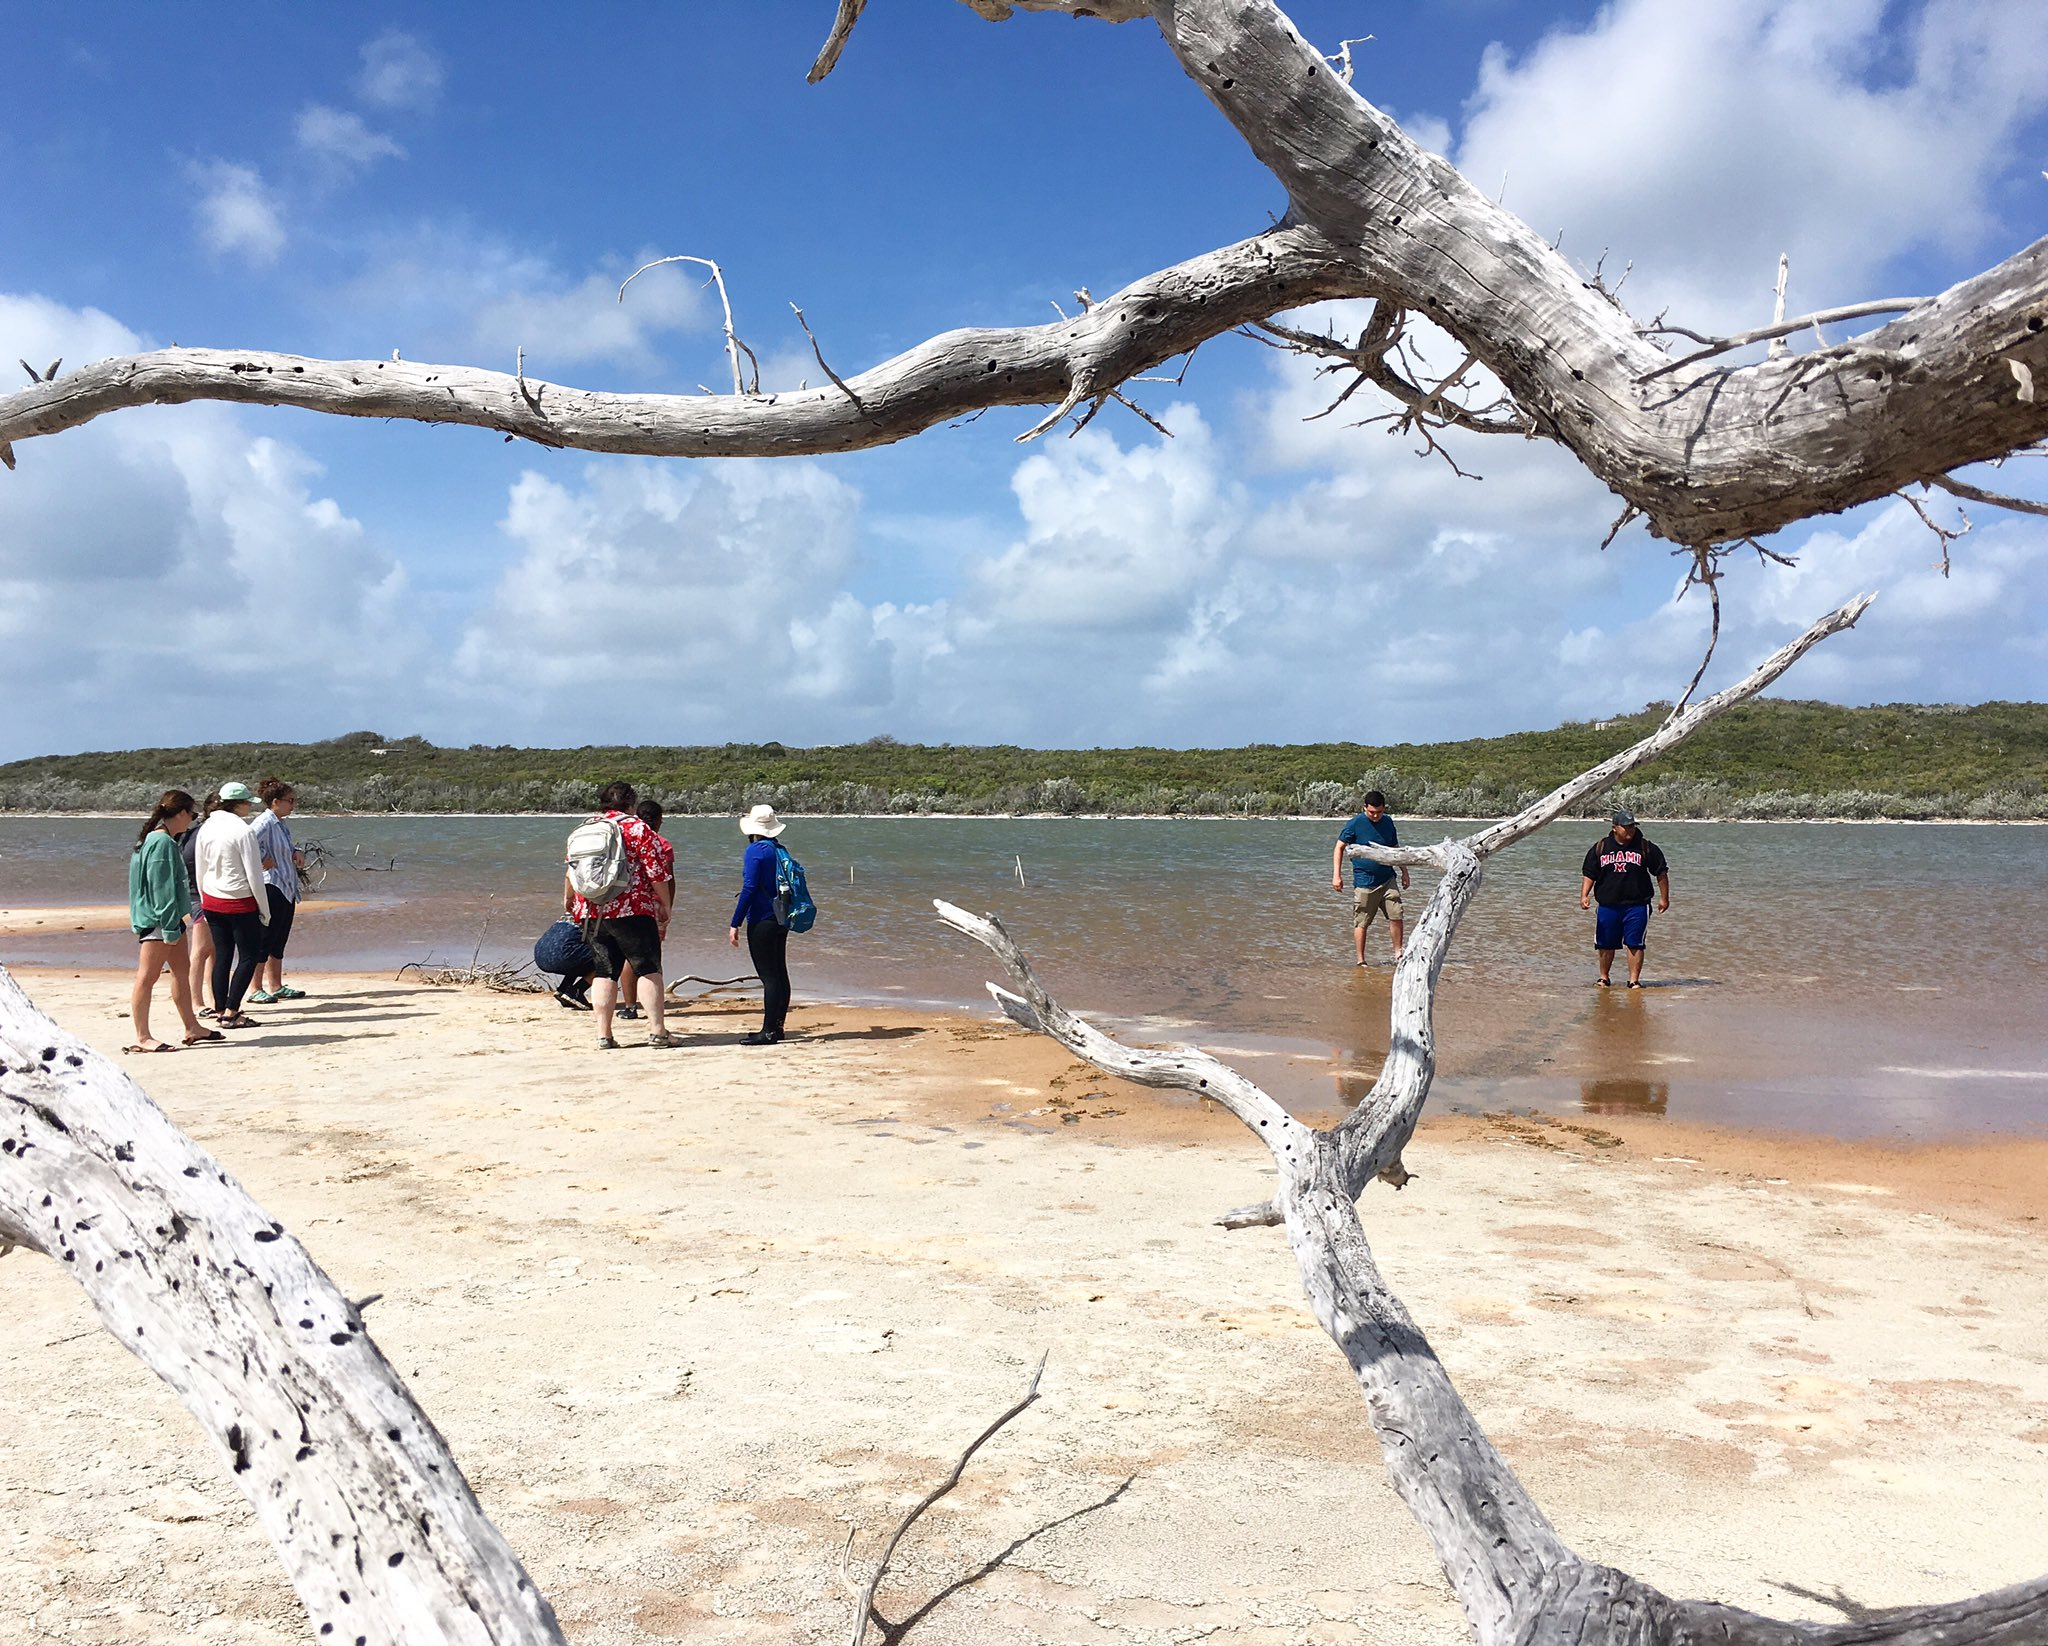 @PaleoMiamiOH @miamiuniversity Exploring the inland hypersaline lakes on the east side of San Salvador #MiamiOH #Bahamas #fieldtrip https://t.co/D0aEOuVL5f